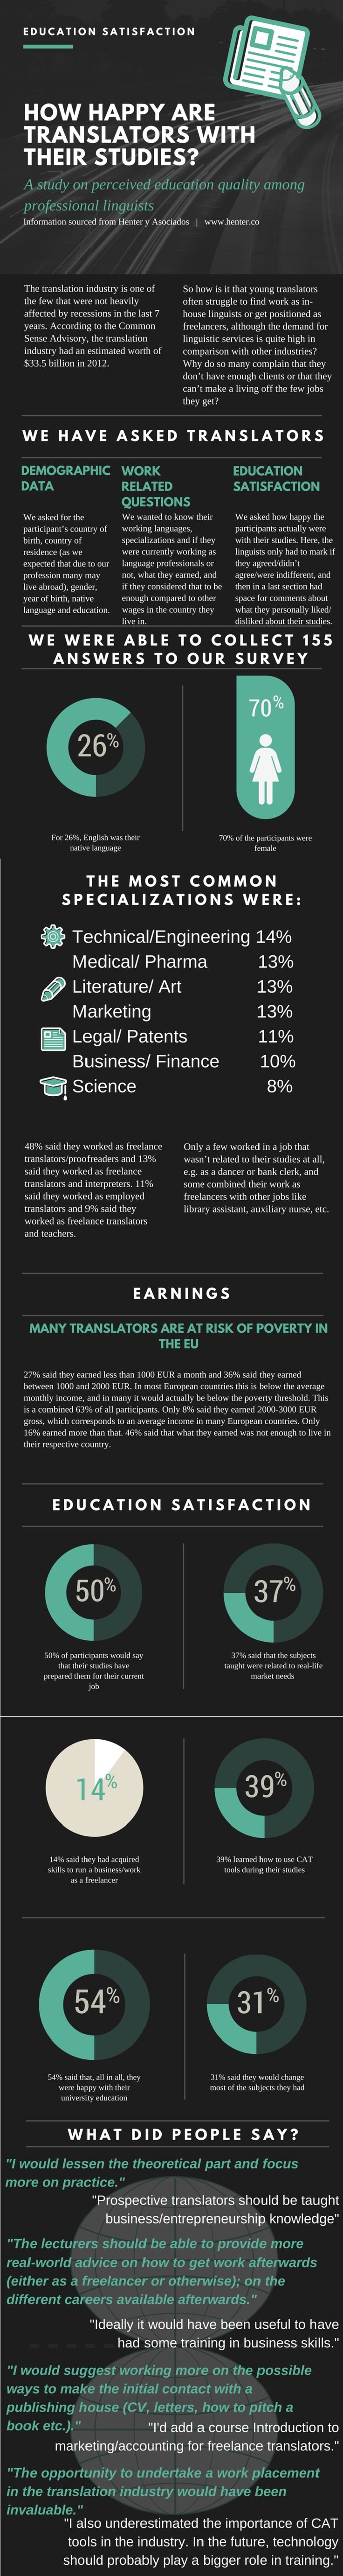 "Infographic Translation - Infographic to summarise the results of the survey ""How happy are translators with their studies"""